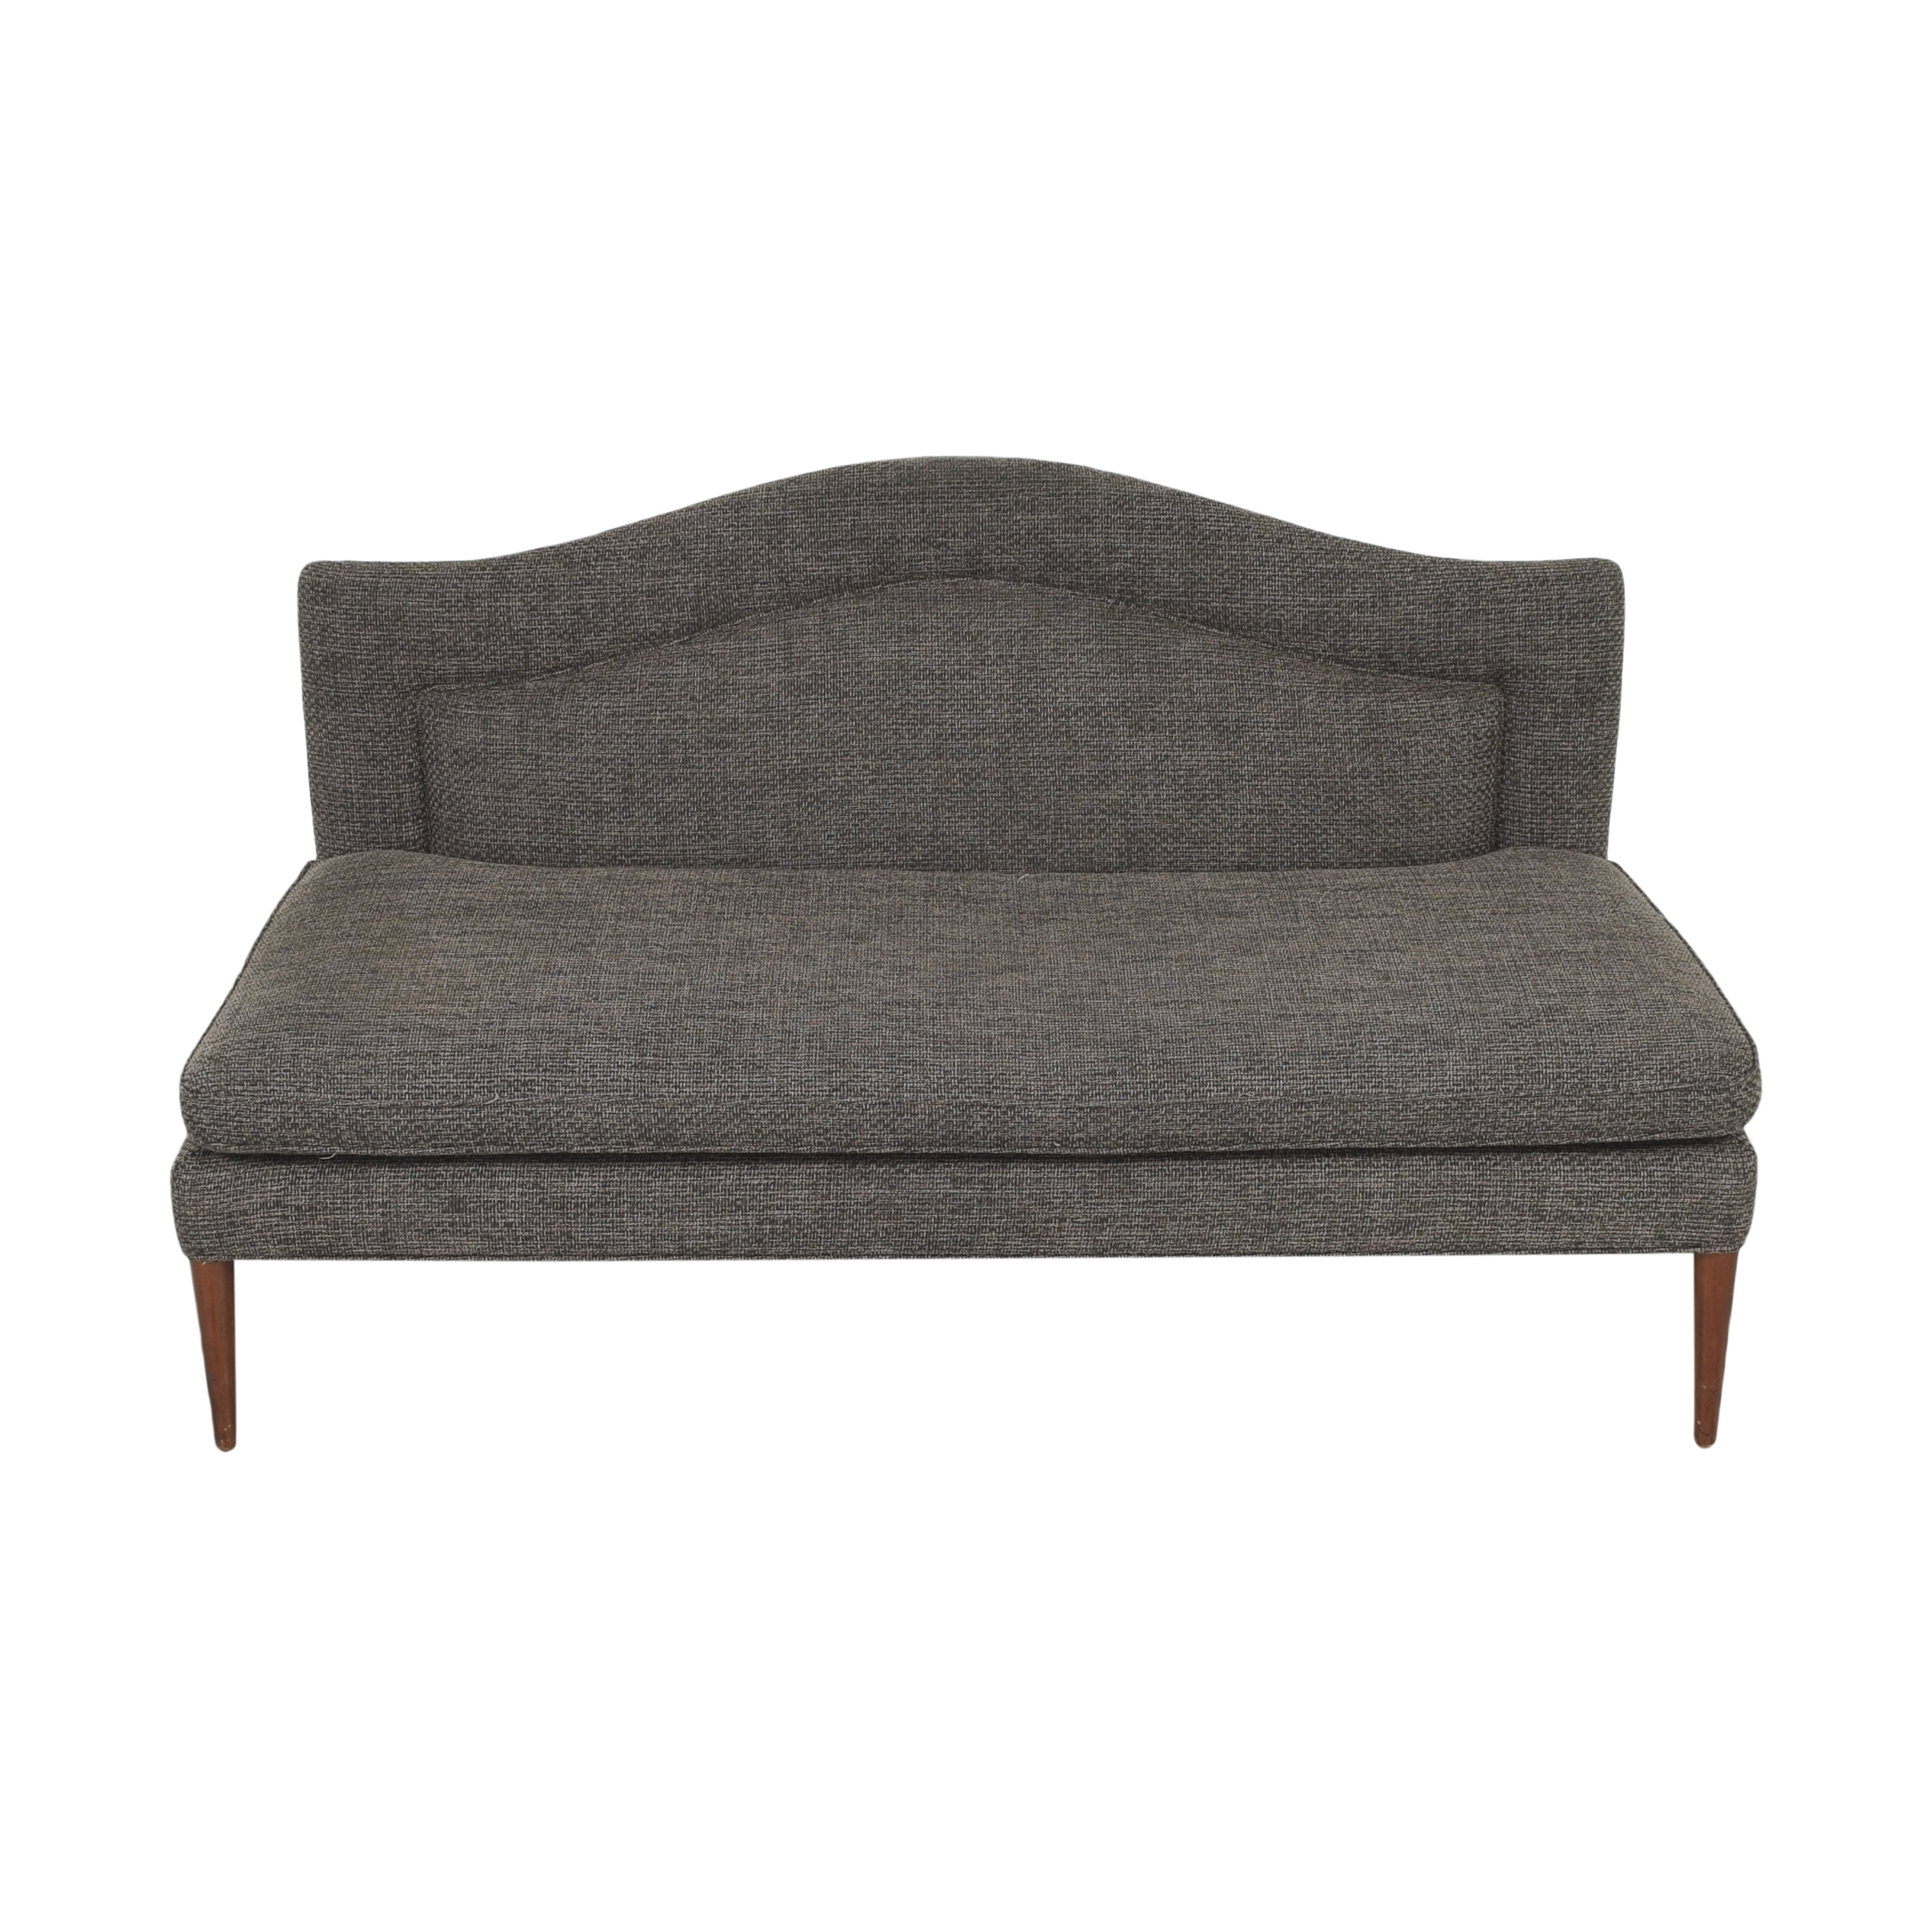 Bright Bright Upholstered Bench pa